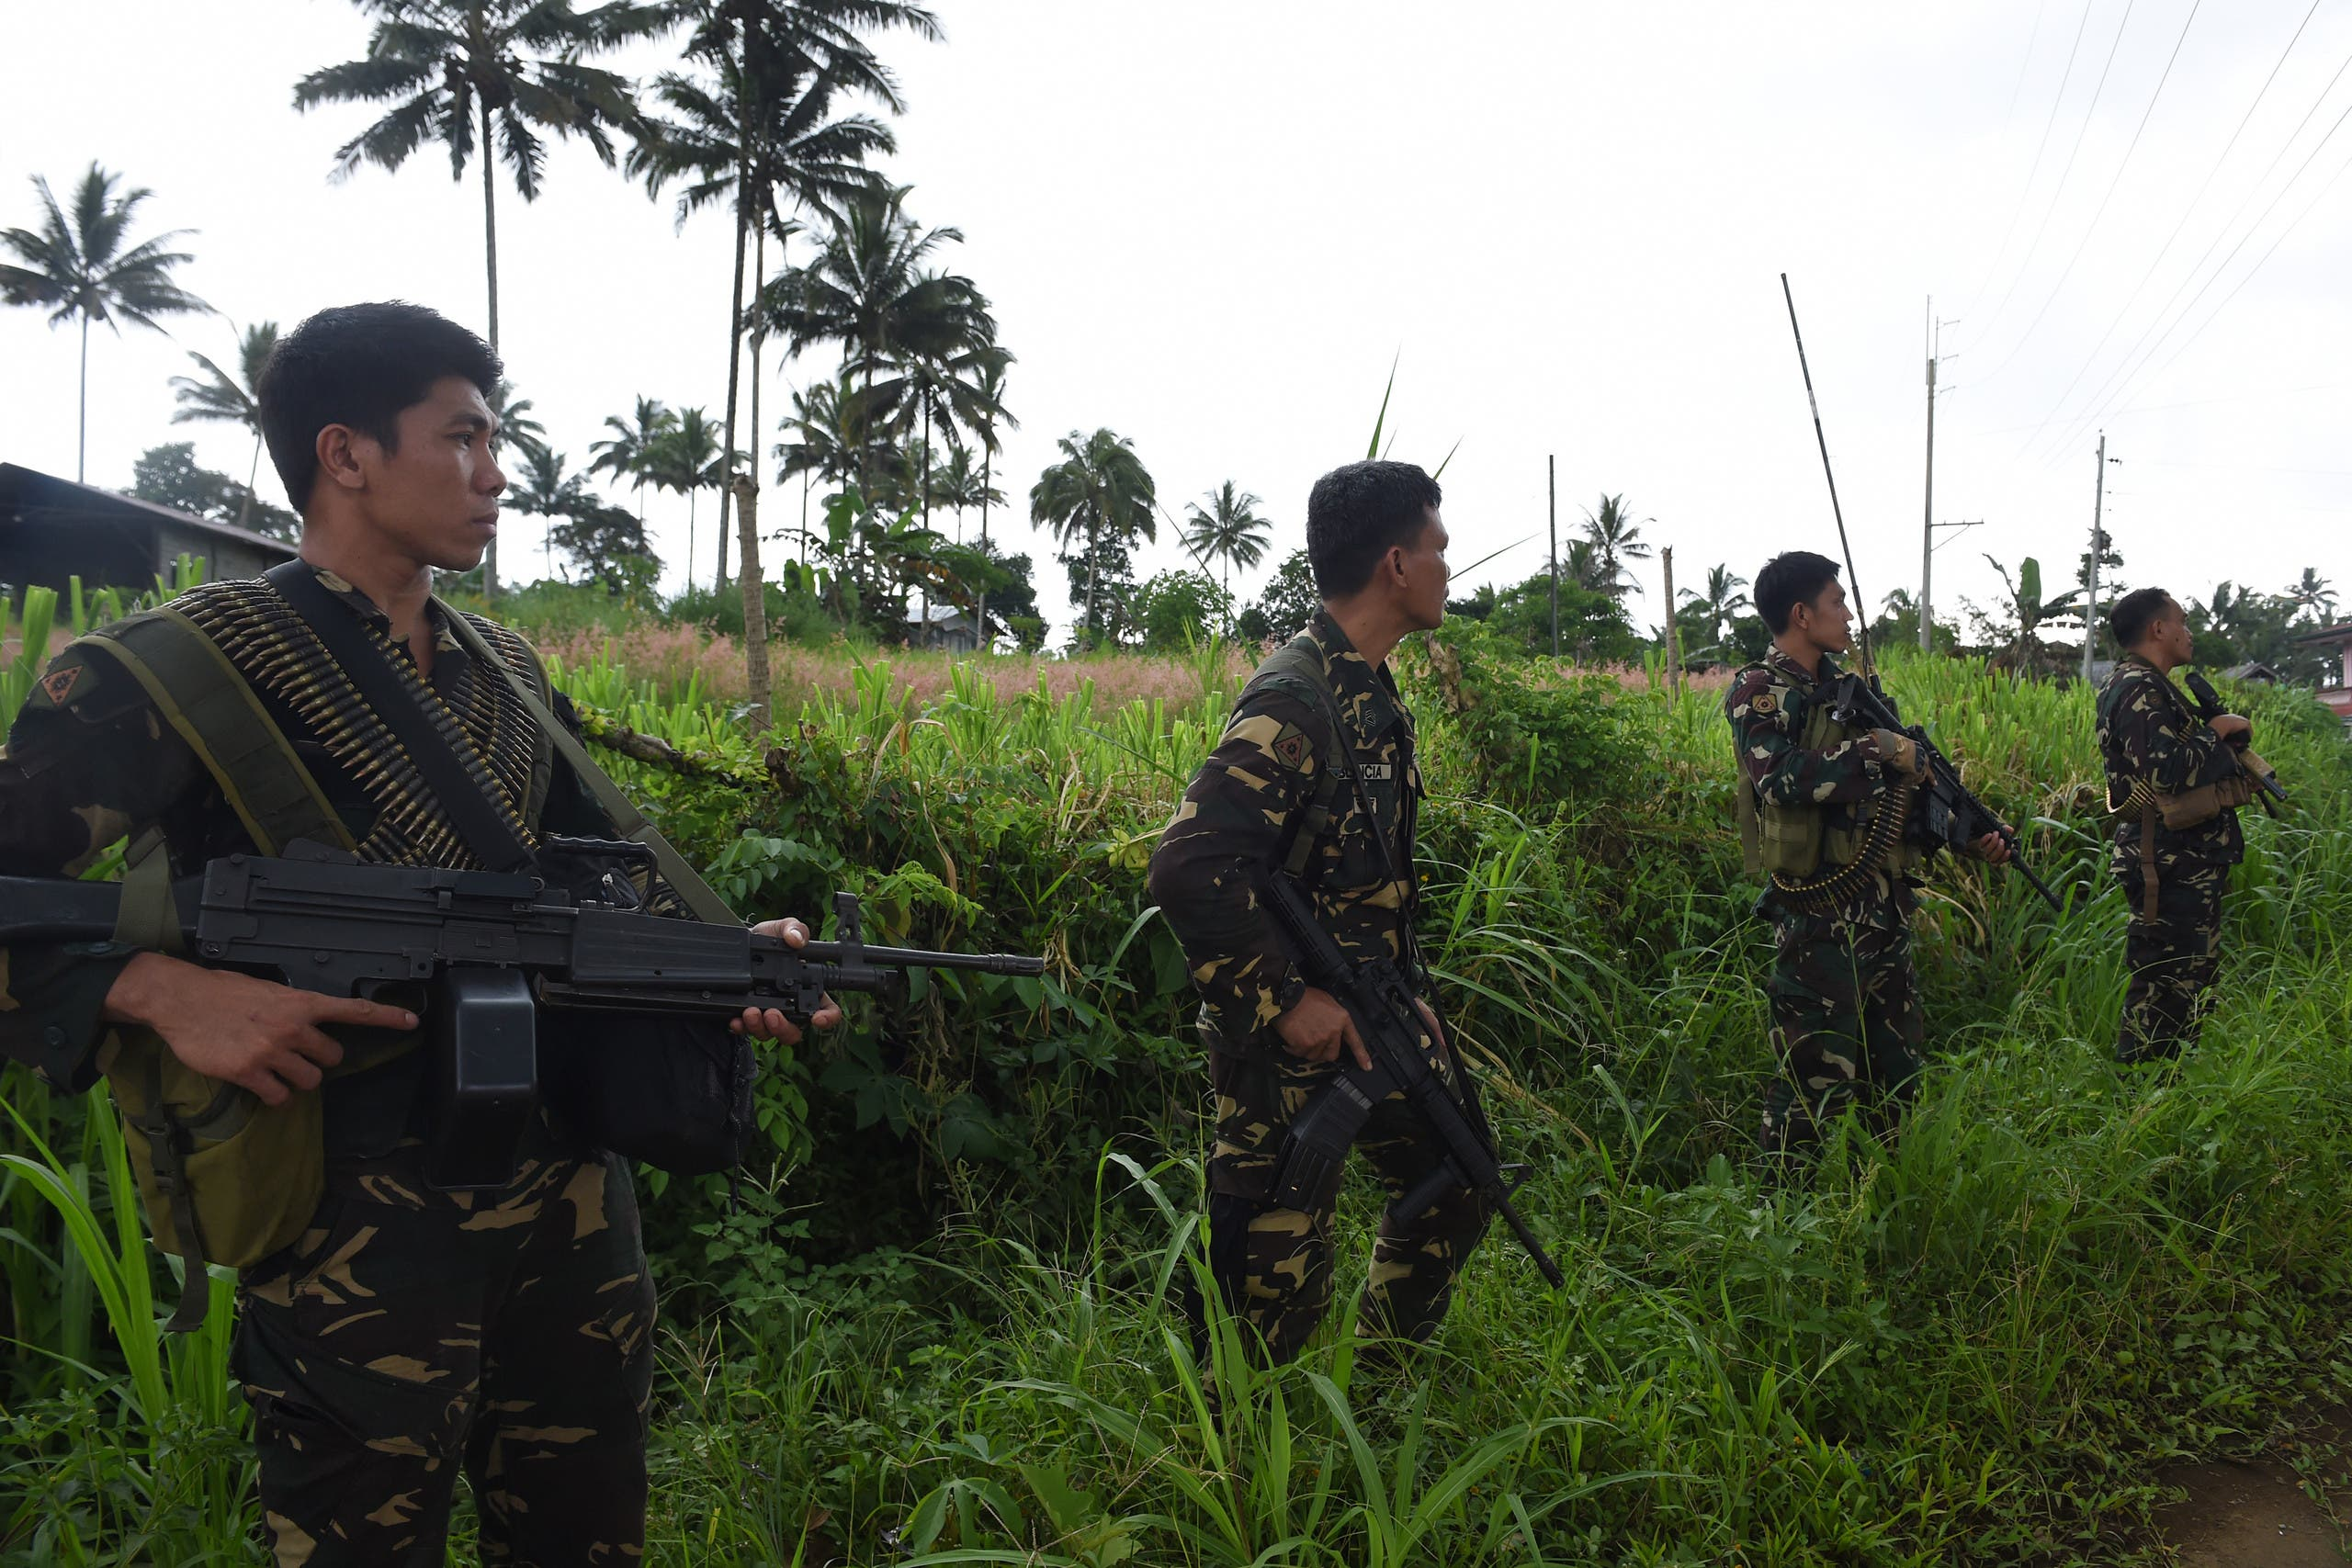 Philippine soldiers secure a road as they provide security for a retrieval operation of dead civilians in the outskirts of Marawi on the southern island of Mindanao on June 28, 2017. (AfP)